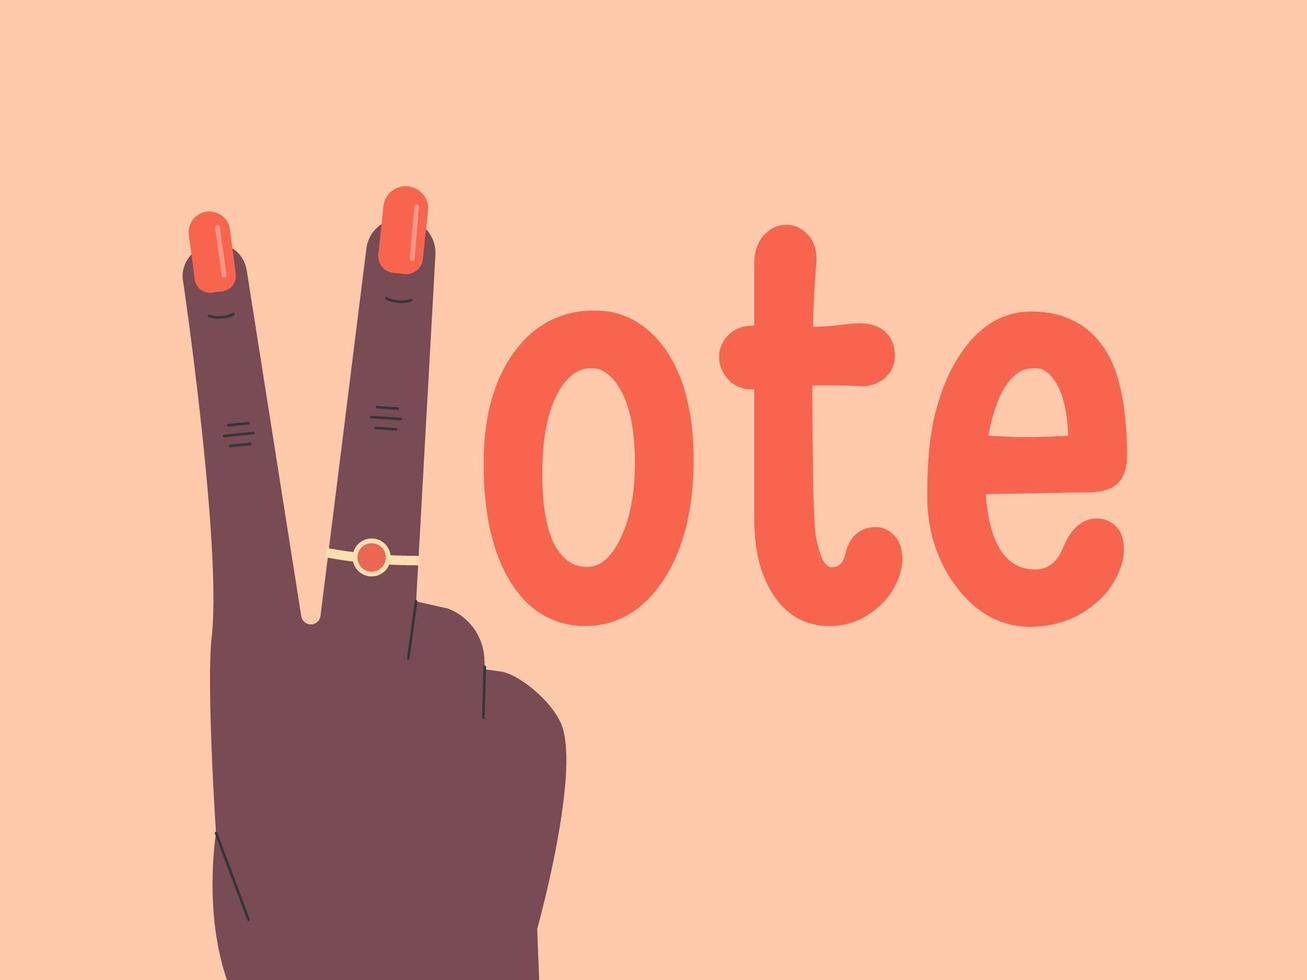 Victory Hand Vote Lettering vector